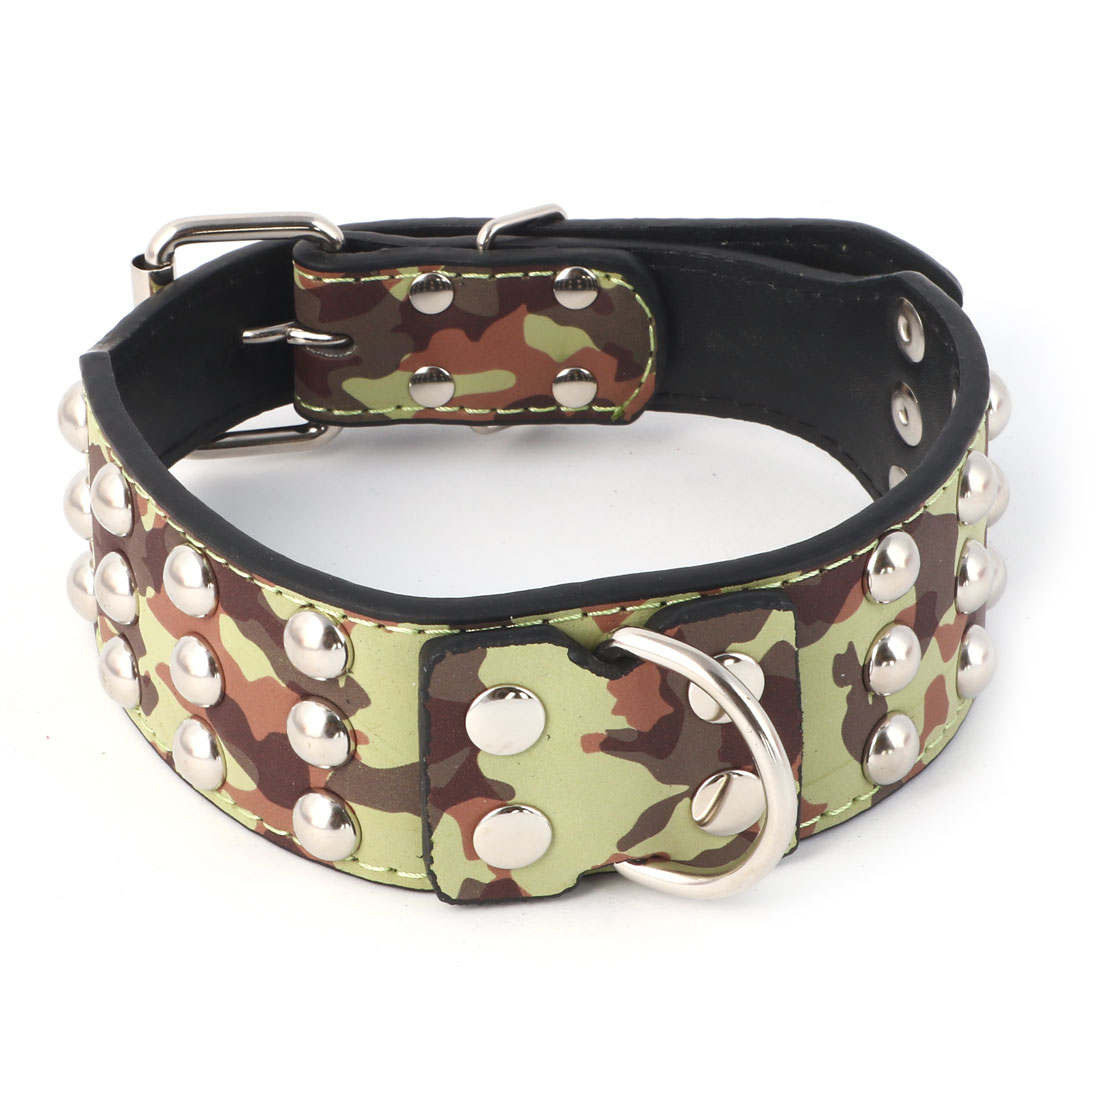 Faux Leather Spiked Rivets Camouflage Pattern Design Pet Pitbull Dog Cat Collar